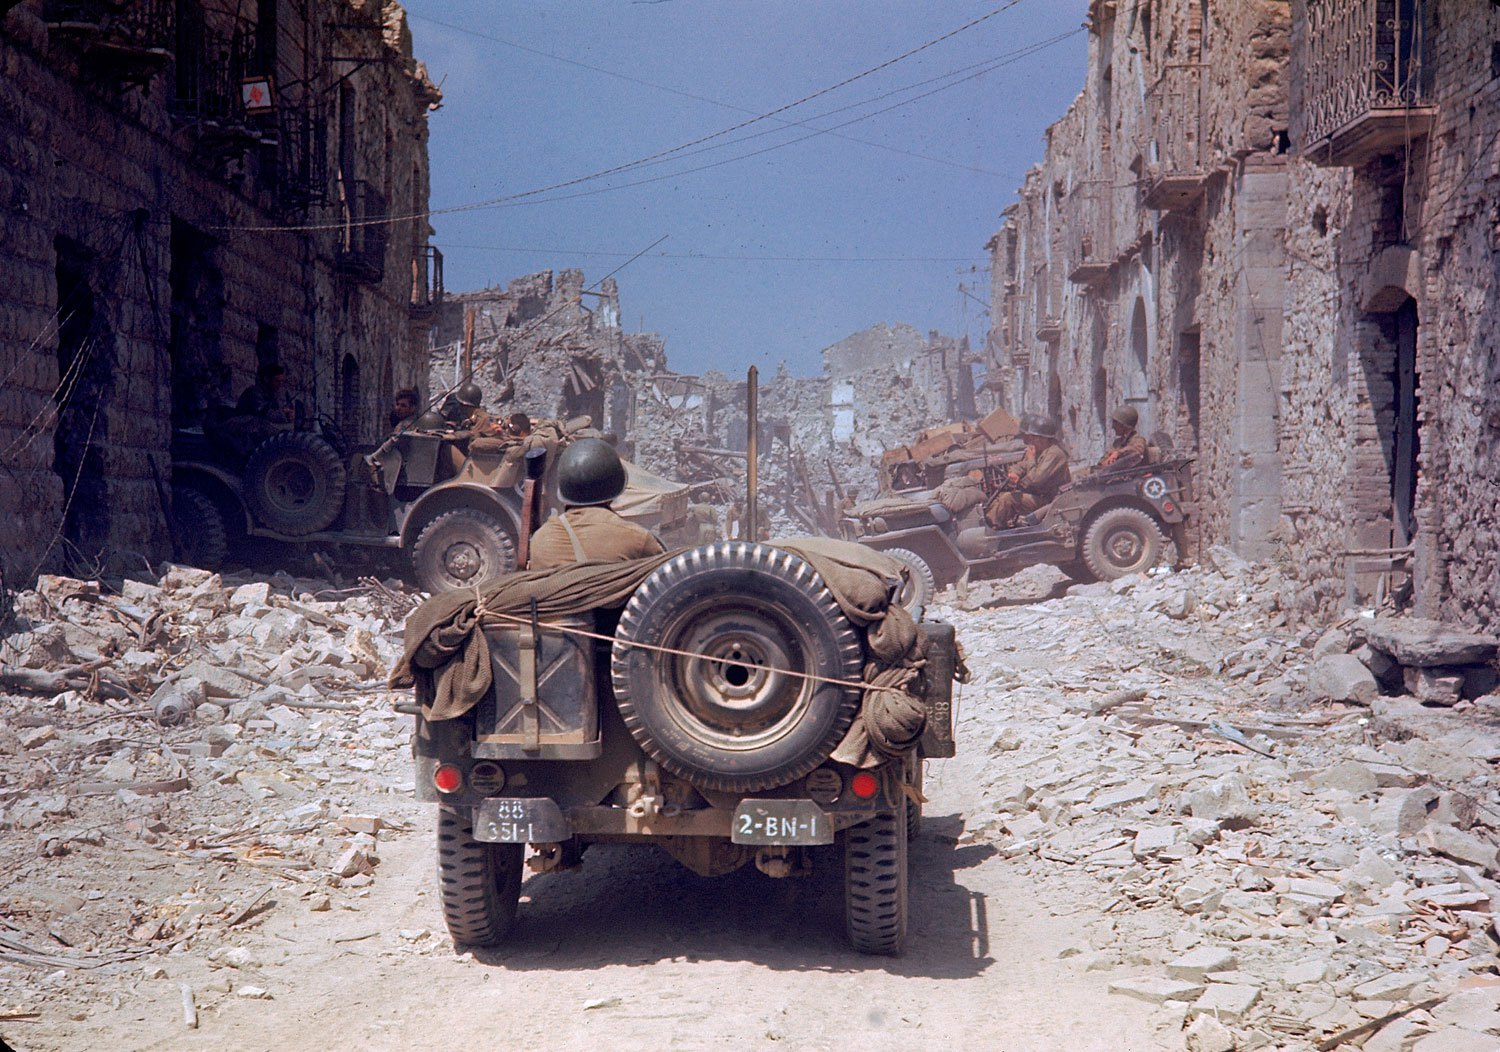 1944 American jeeps travel through a bombed-out town during the drive towards Rome